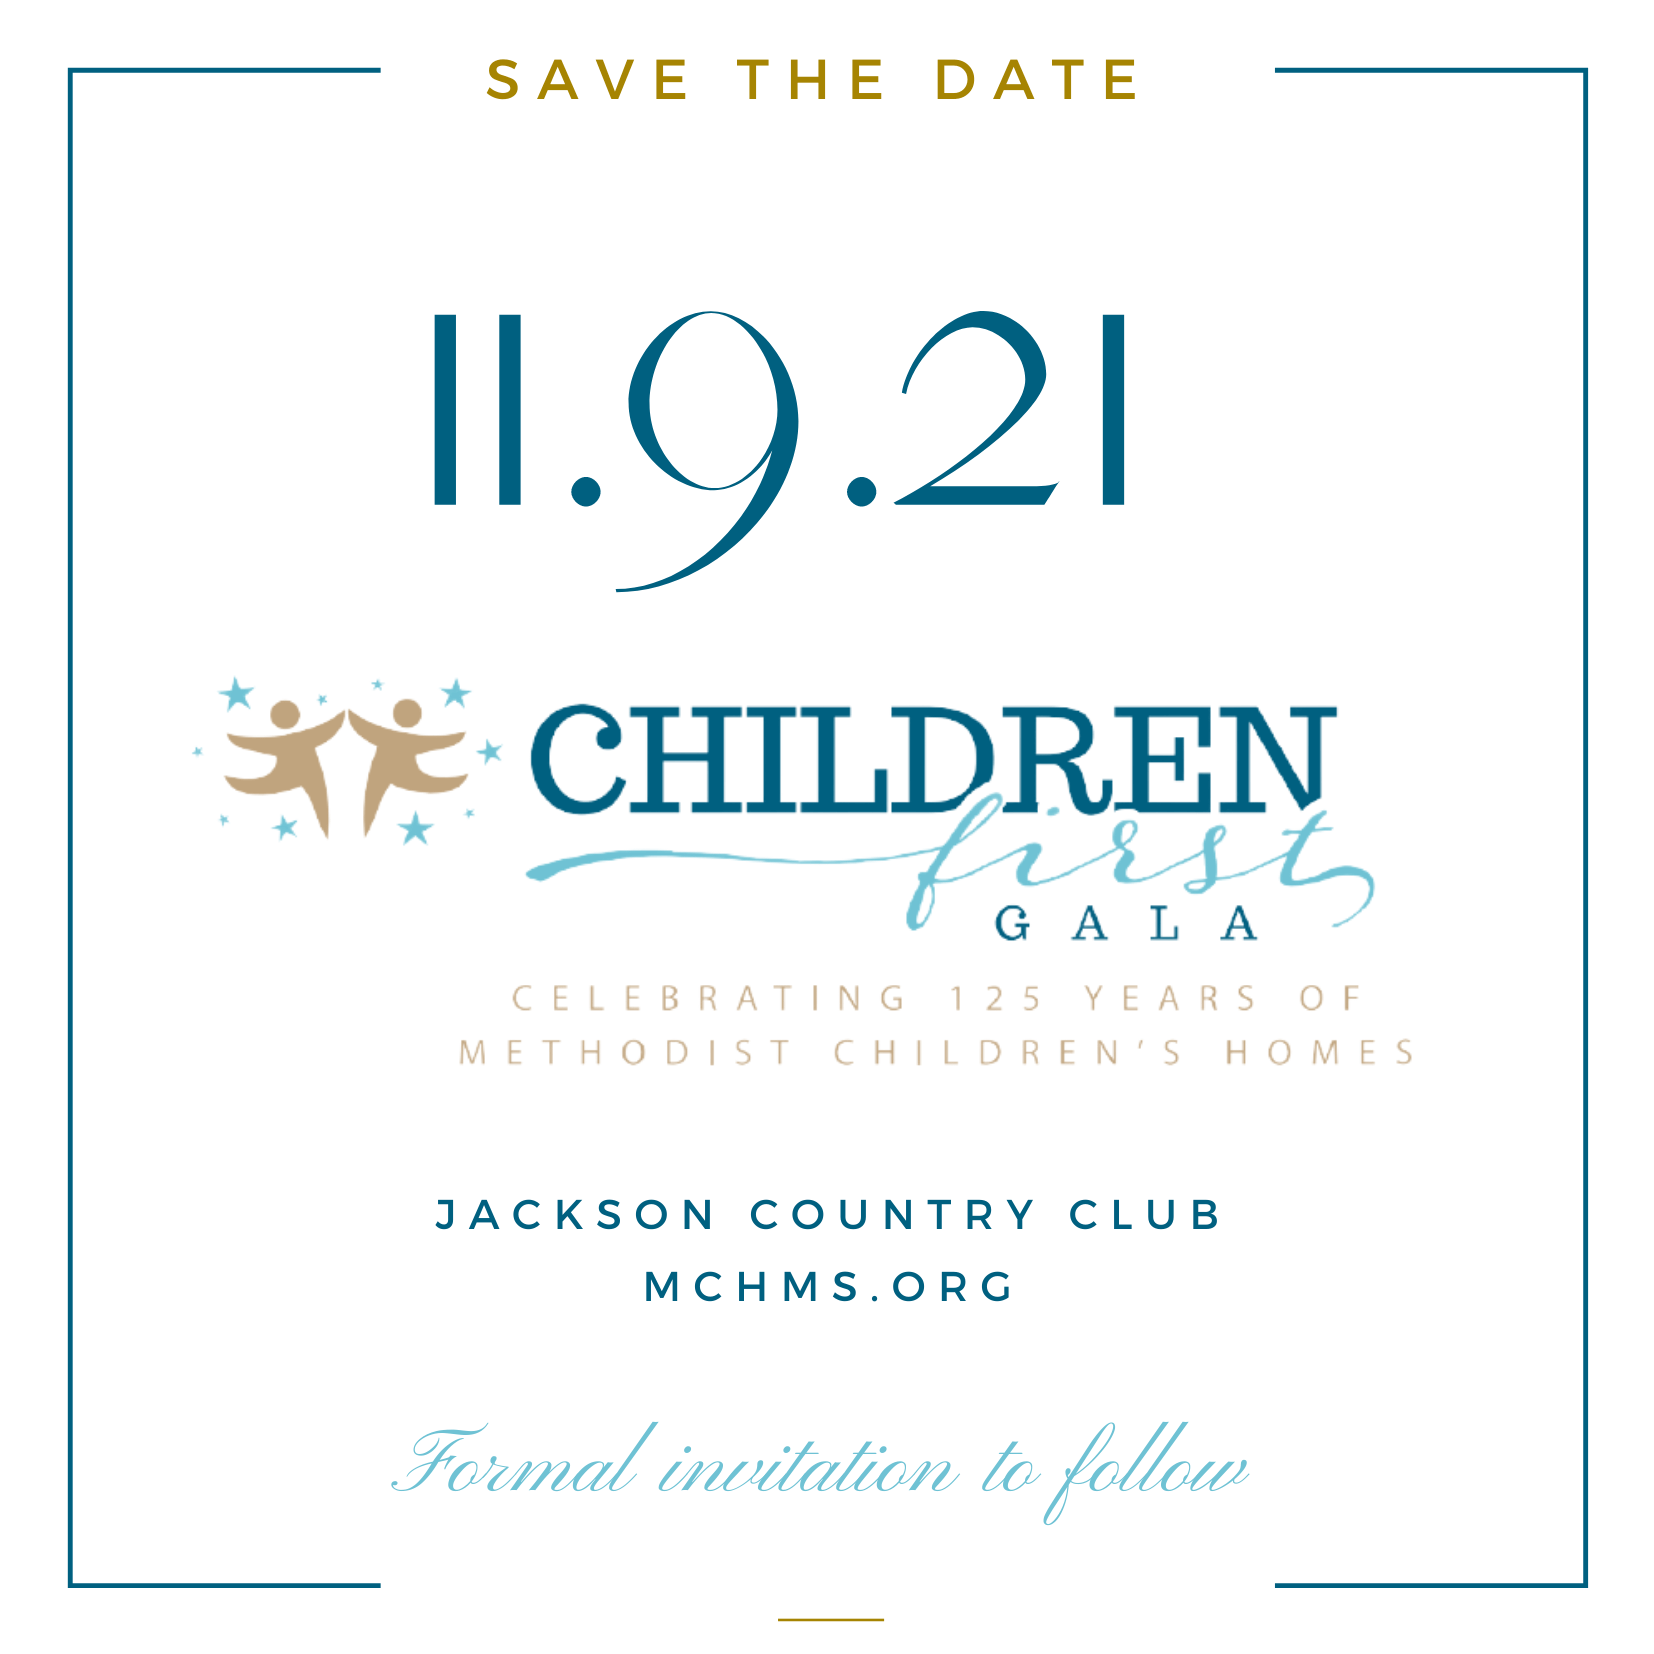 Children First Gala Save the Date